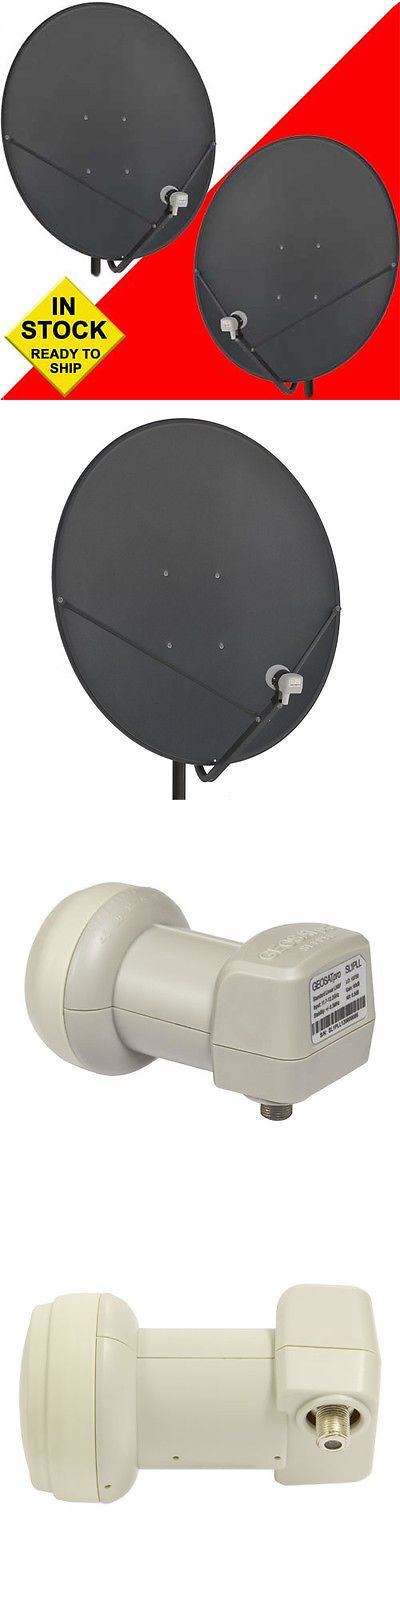 Antennas and Dishes: Two (2) 36 Inch 90 Cm Free To Air Fta Satellite Dishes And 2 Free Hd Pll Lnbfs -> BUY IT NOW ONLY: $179 on eBay!